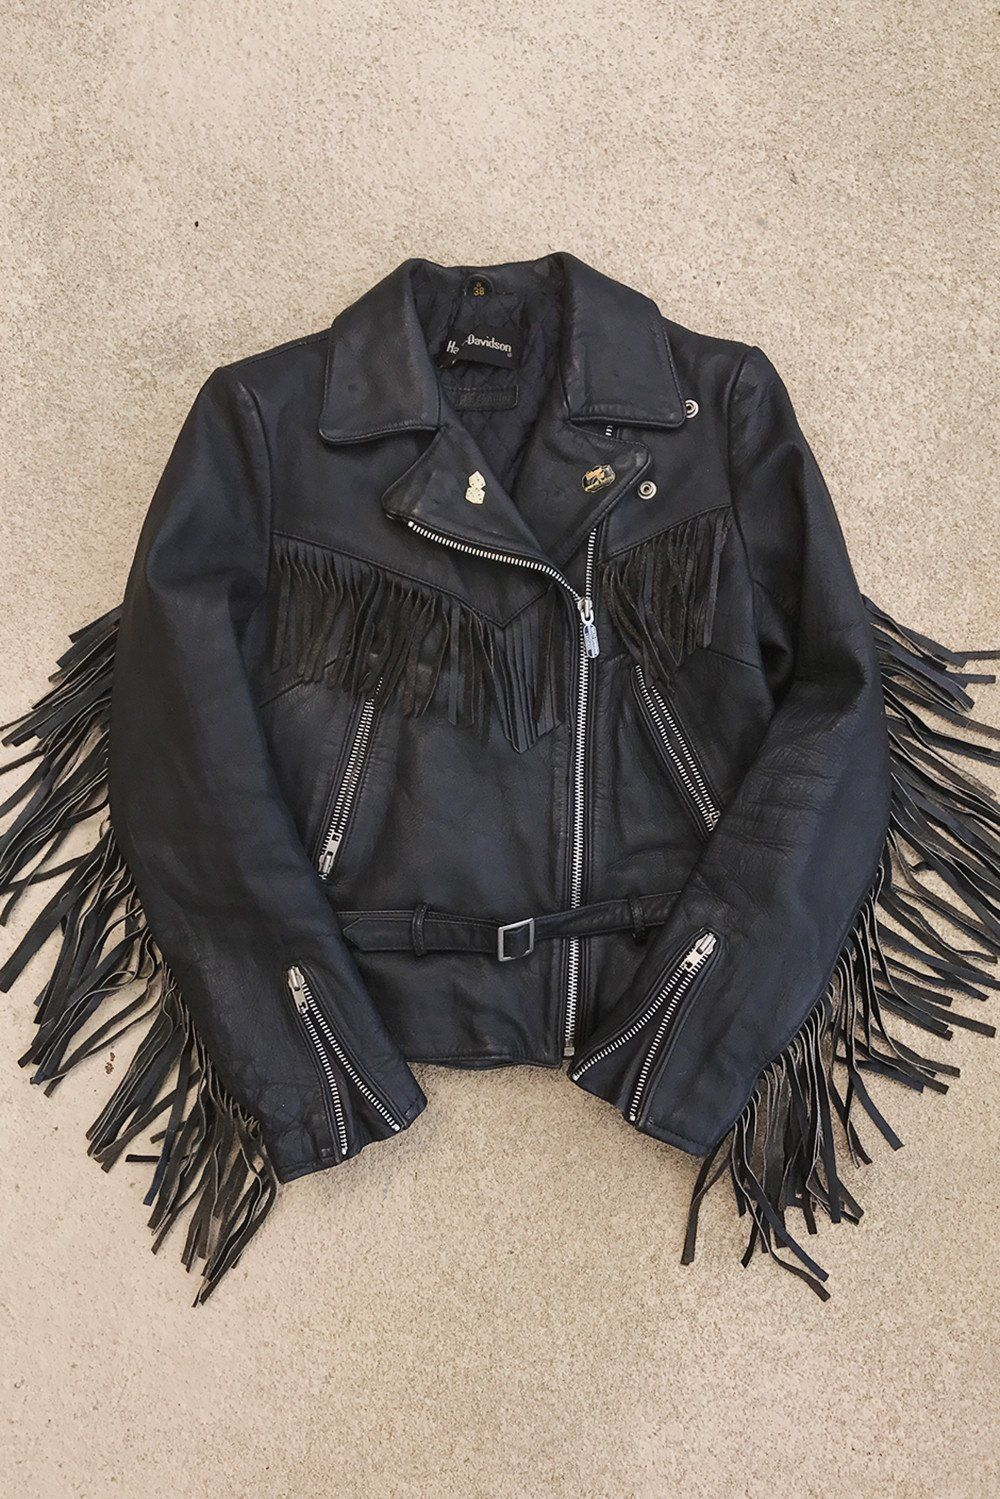 Black Magic Super Fitted And Soft Harley Davidson Fringe Leather Jacket Fringe Leather Jacket Leather Jacket Jackets [ 1499 x 1000 Pixel ]